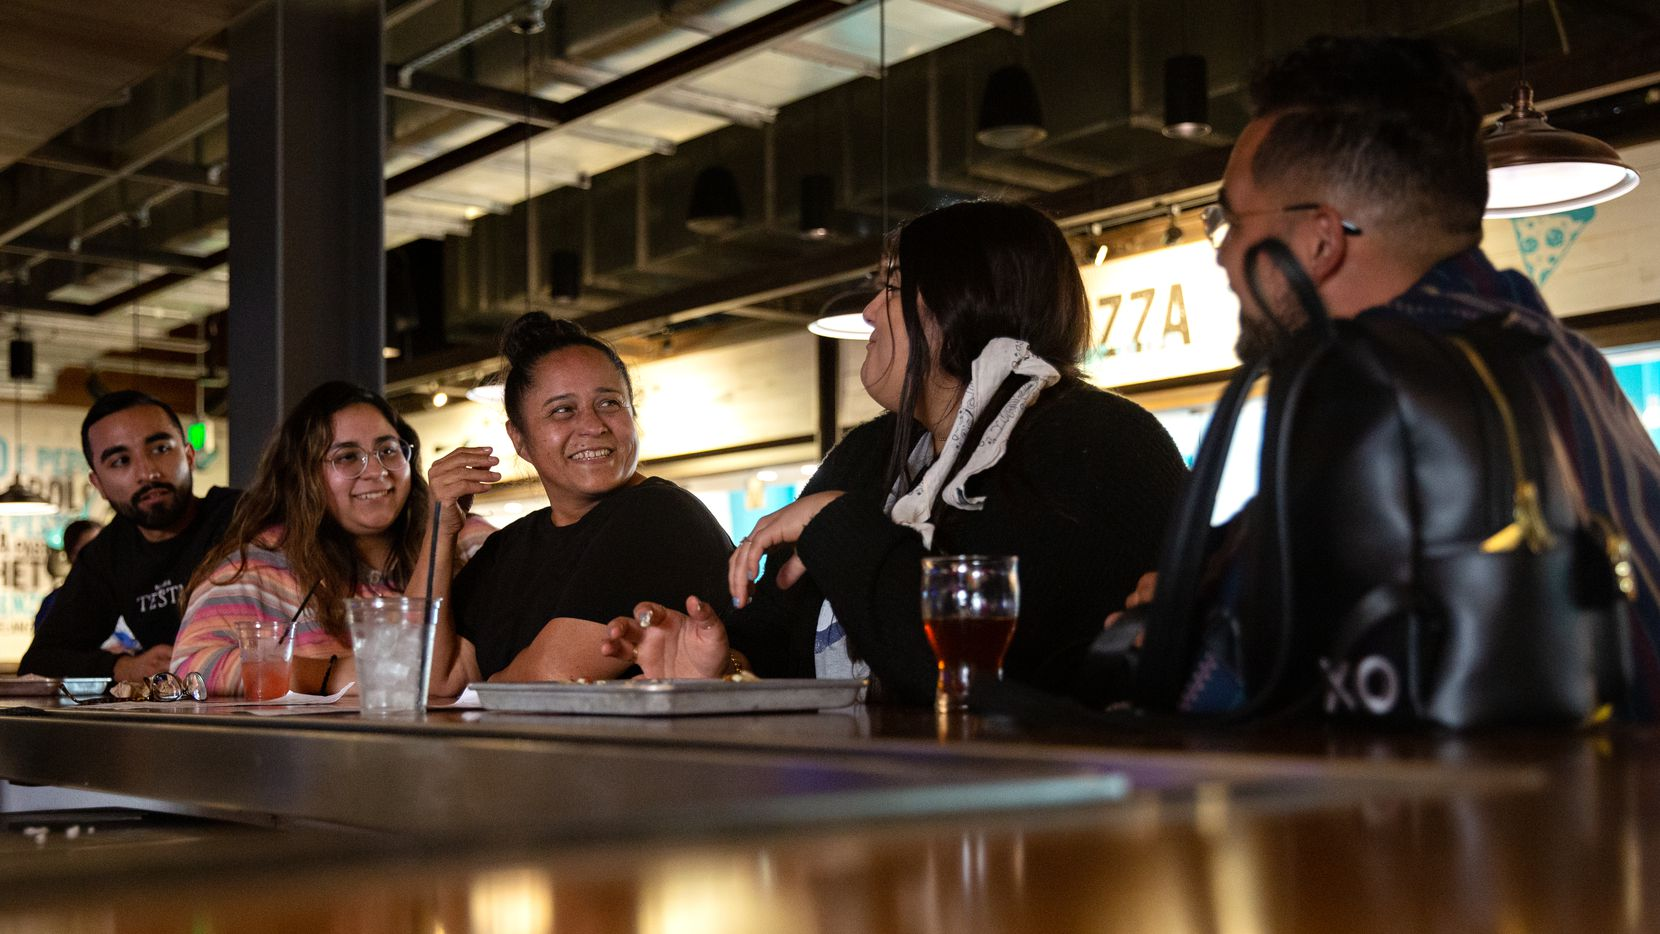 Aaron Casas (from left), Gabriella Casas, Cecilia Casas, Ivana Sarasola and Jacob Casas enjoyed drinks at Legacy Hall, part of the Legacy West complex, in Plano on Monday. All over North Texas, life is beginning to look a lot more like it did before the pandemic struck in March 2020.